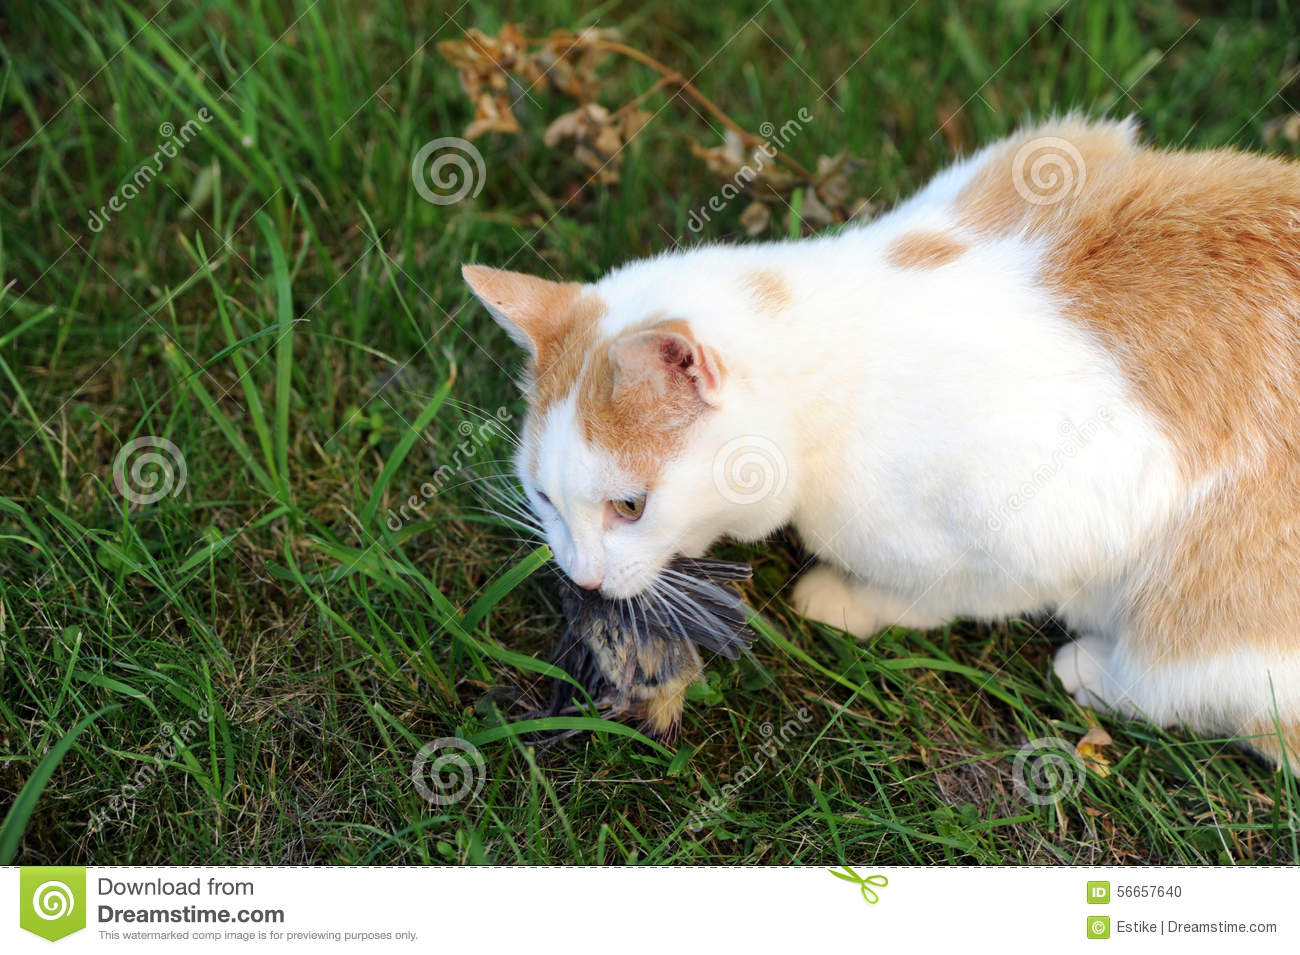 Cat with hunted down bird